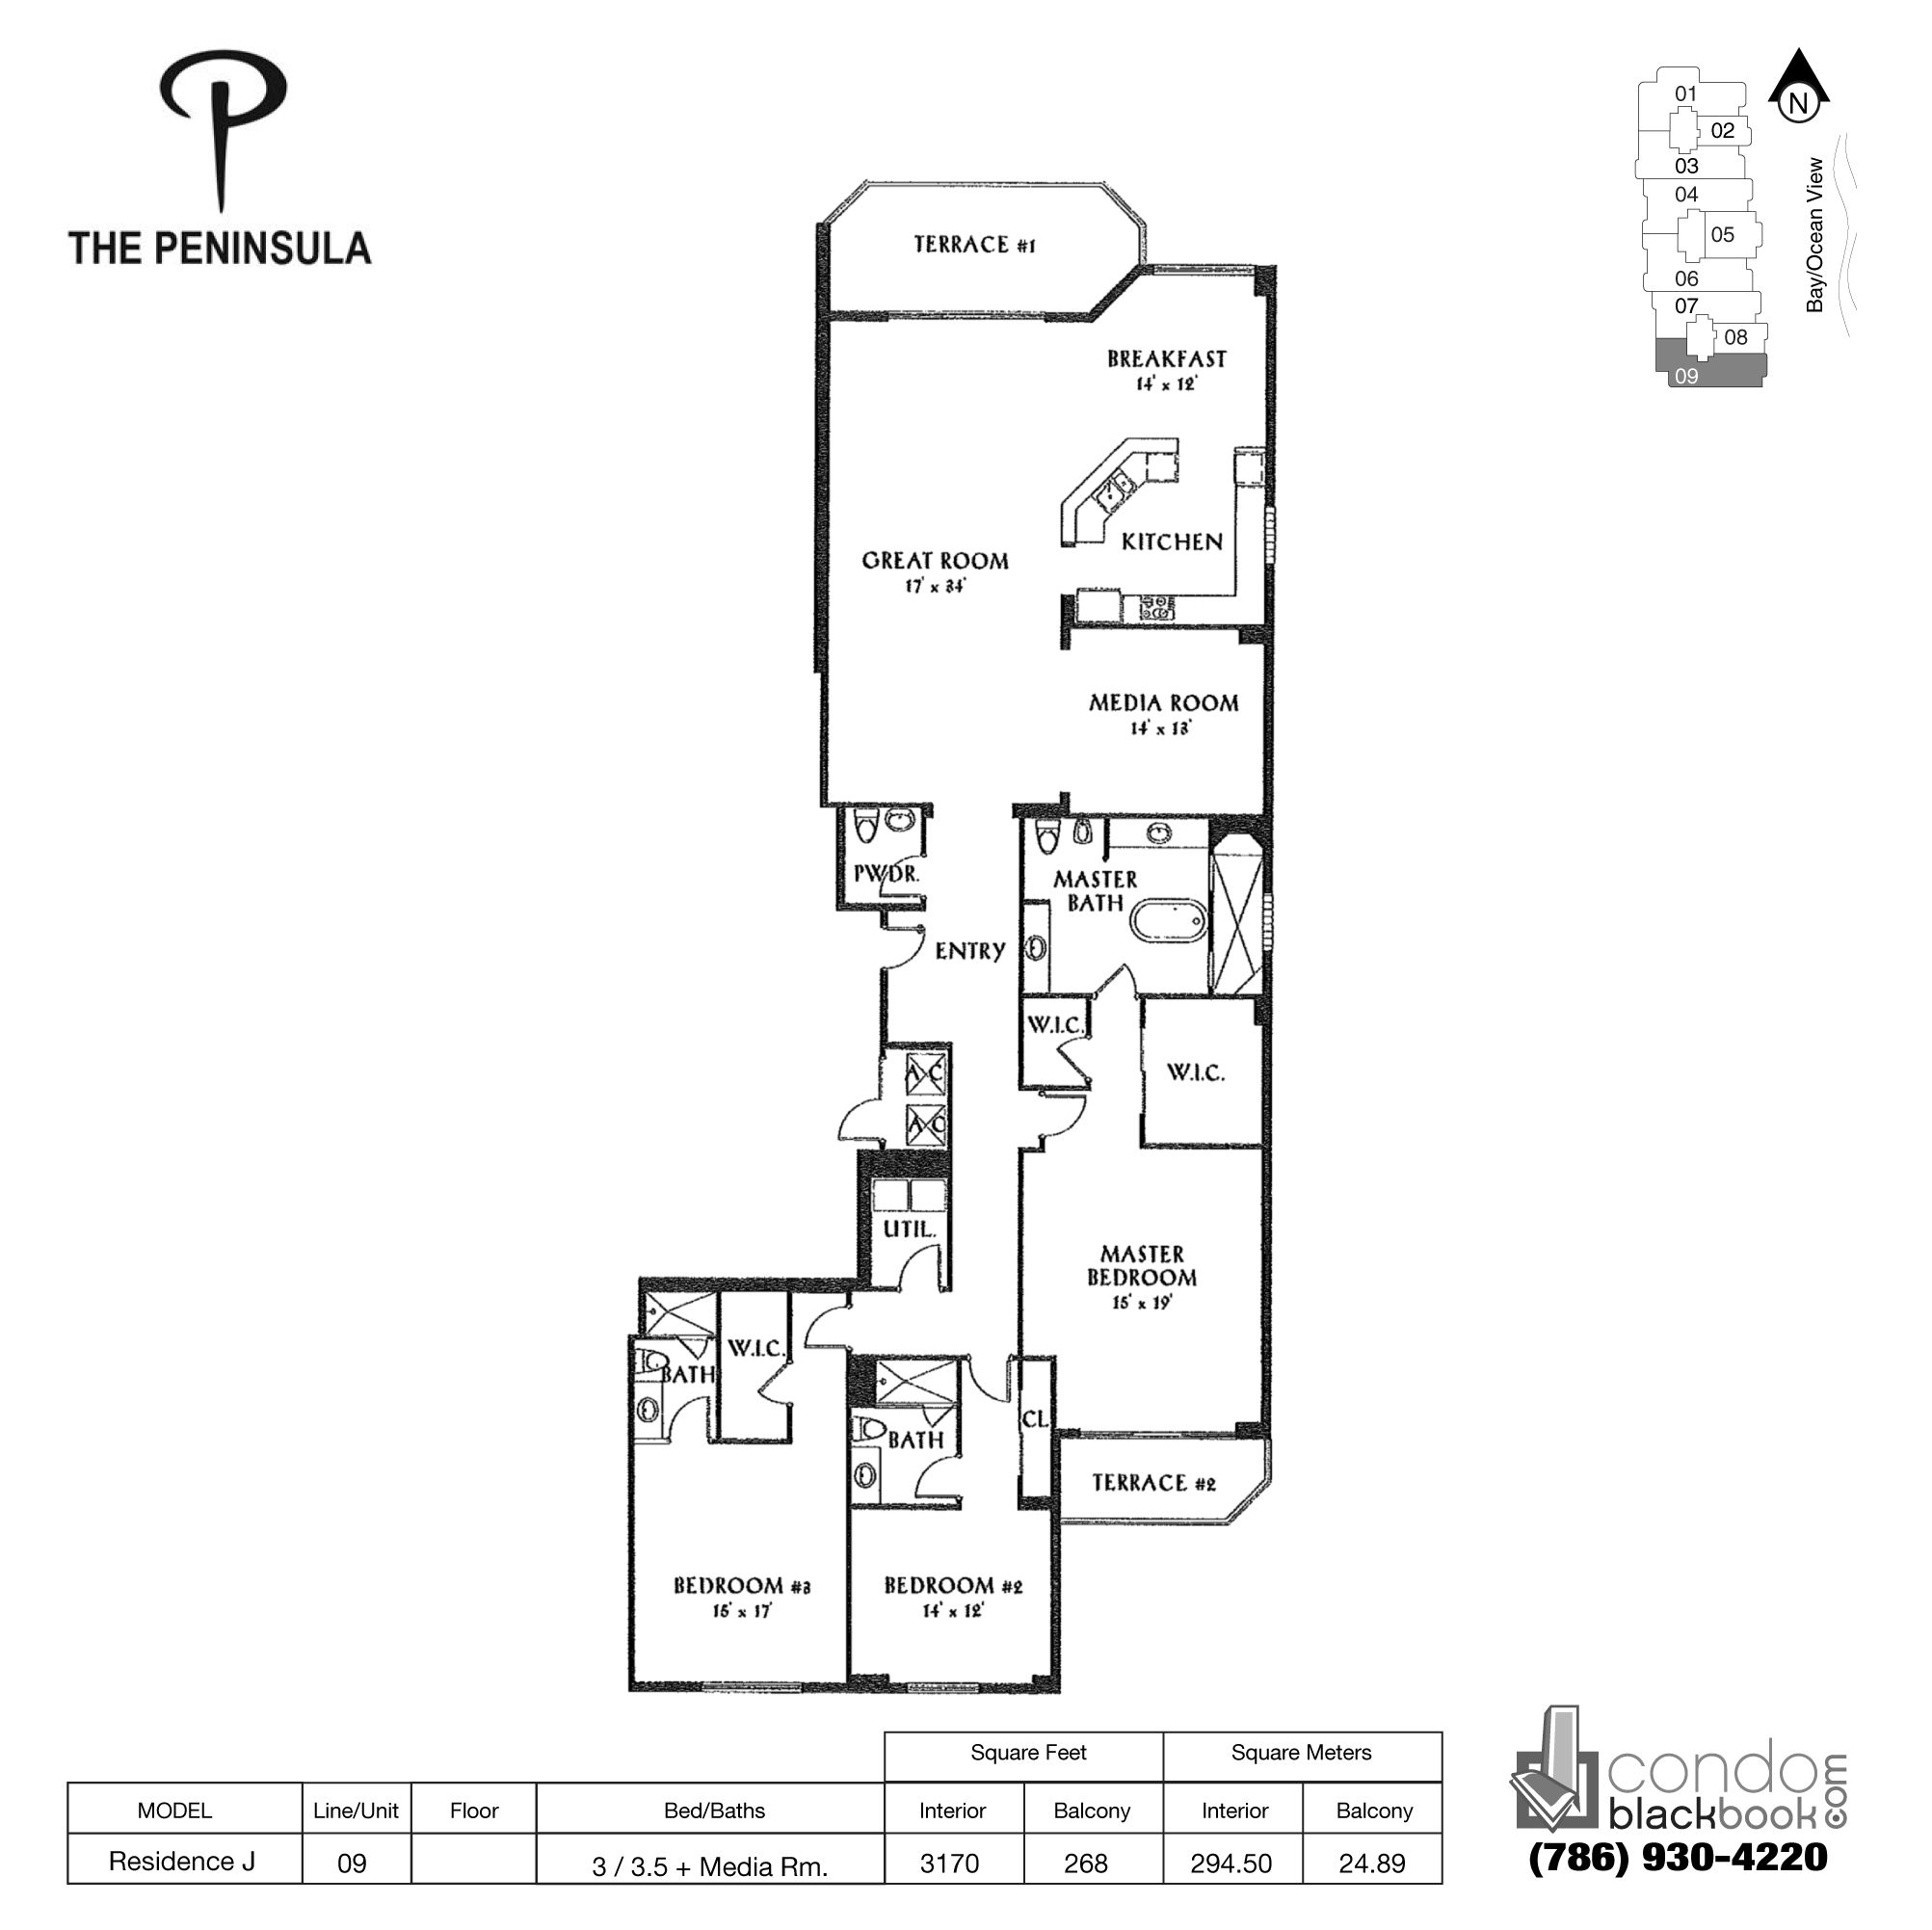 Floor plan for Peninsula II Aventura, model Res. J, line 09, 3 / 3.5 + Media Rooms bedrooms, 3170 sq ft